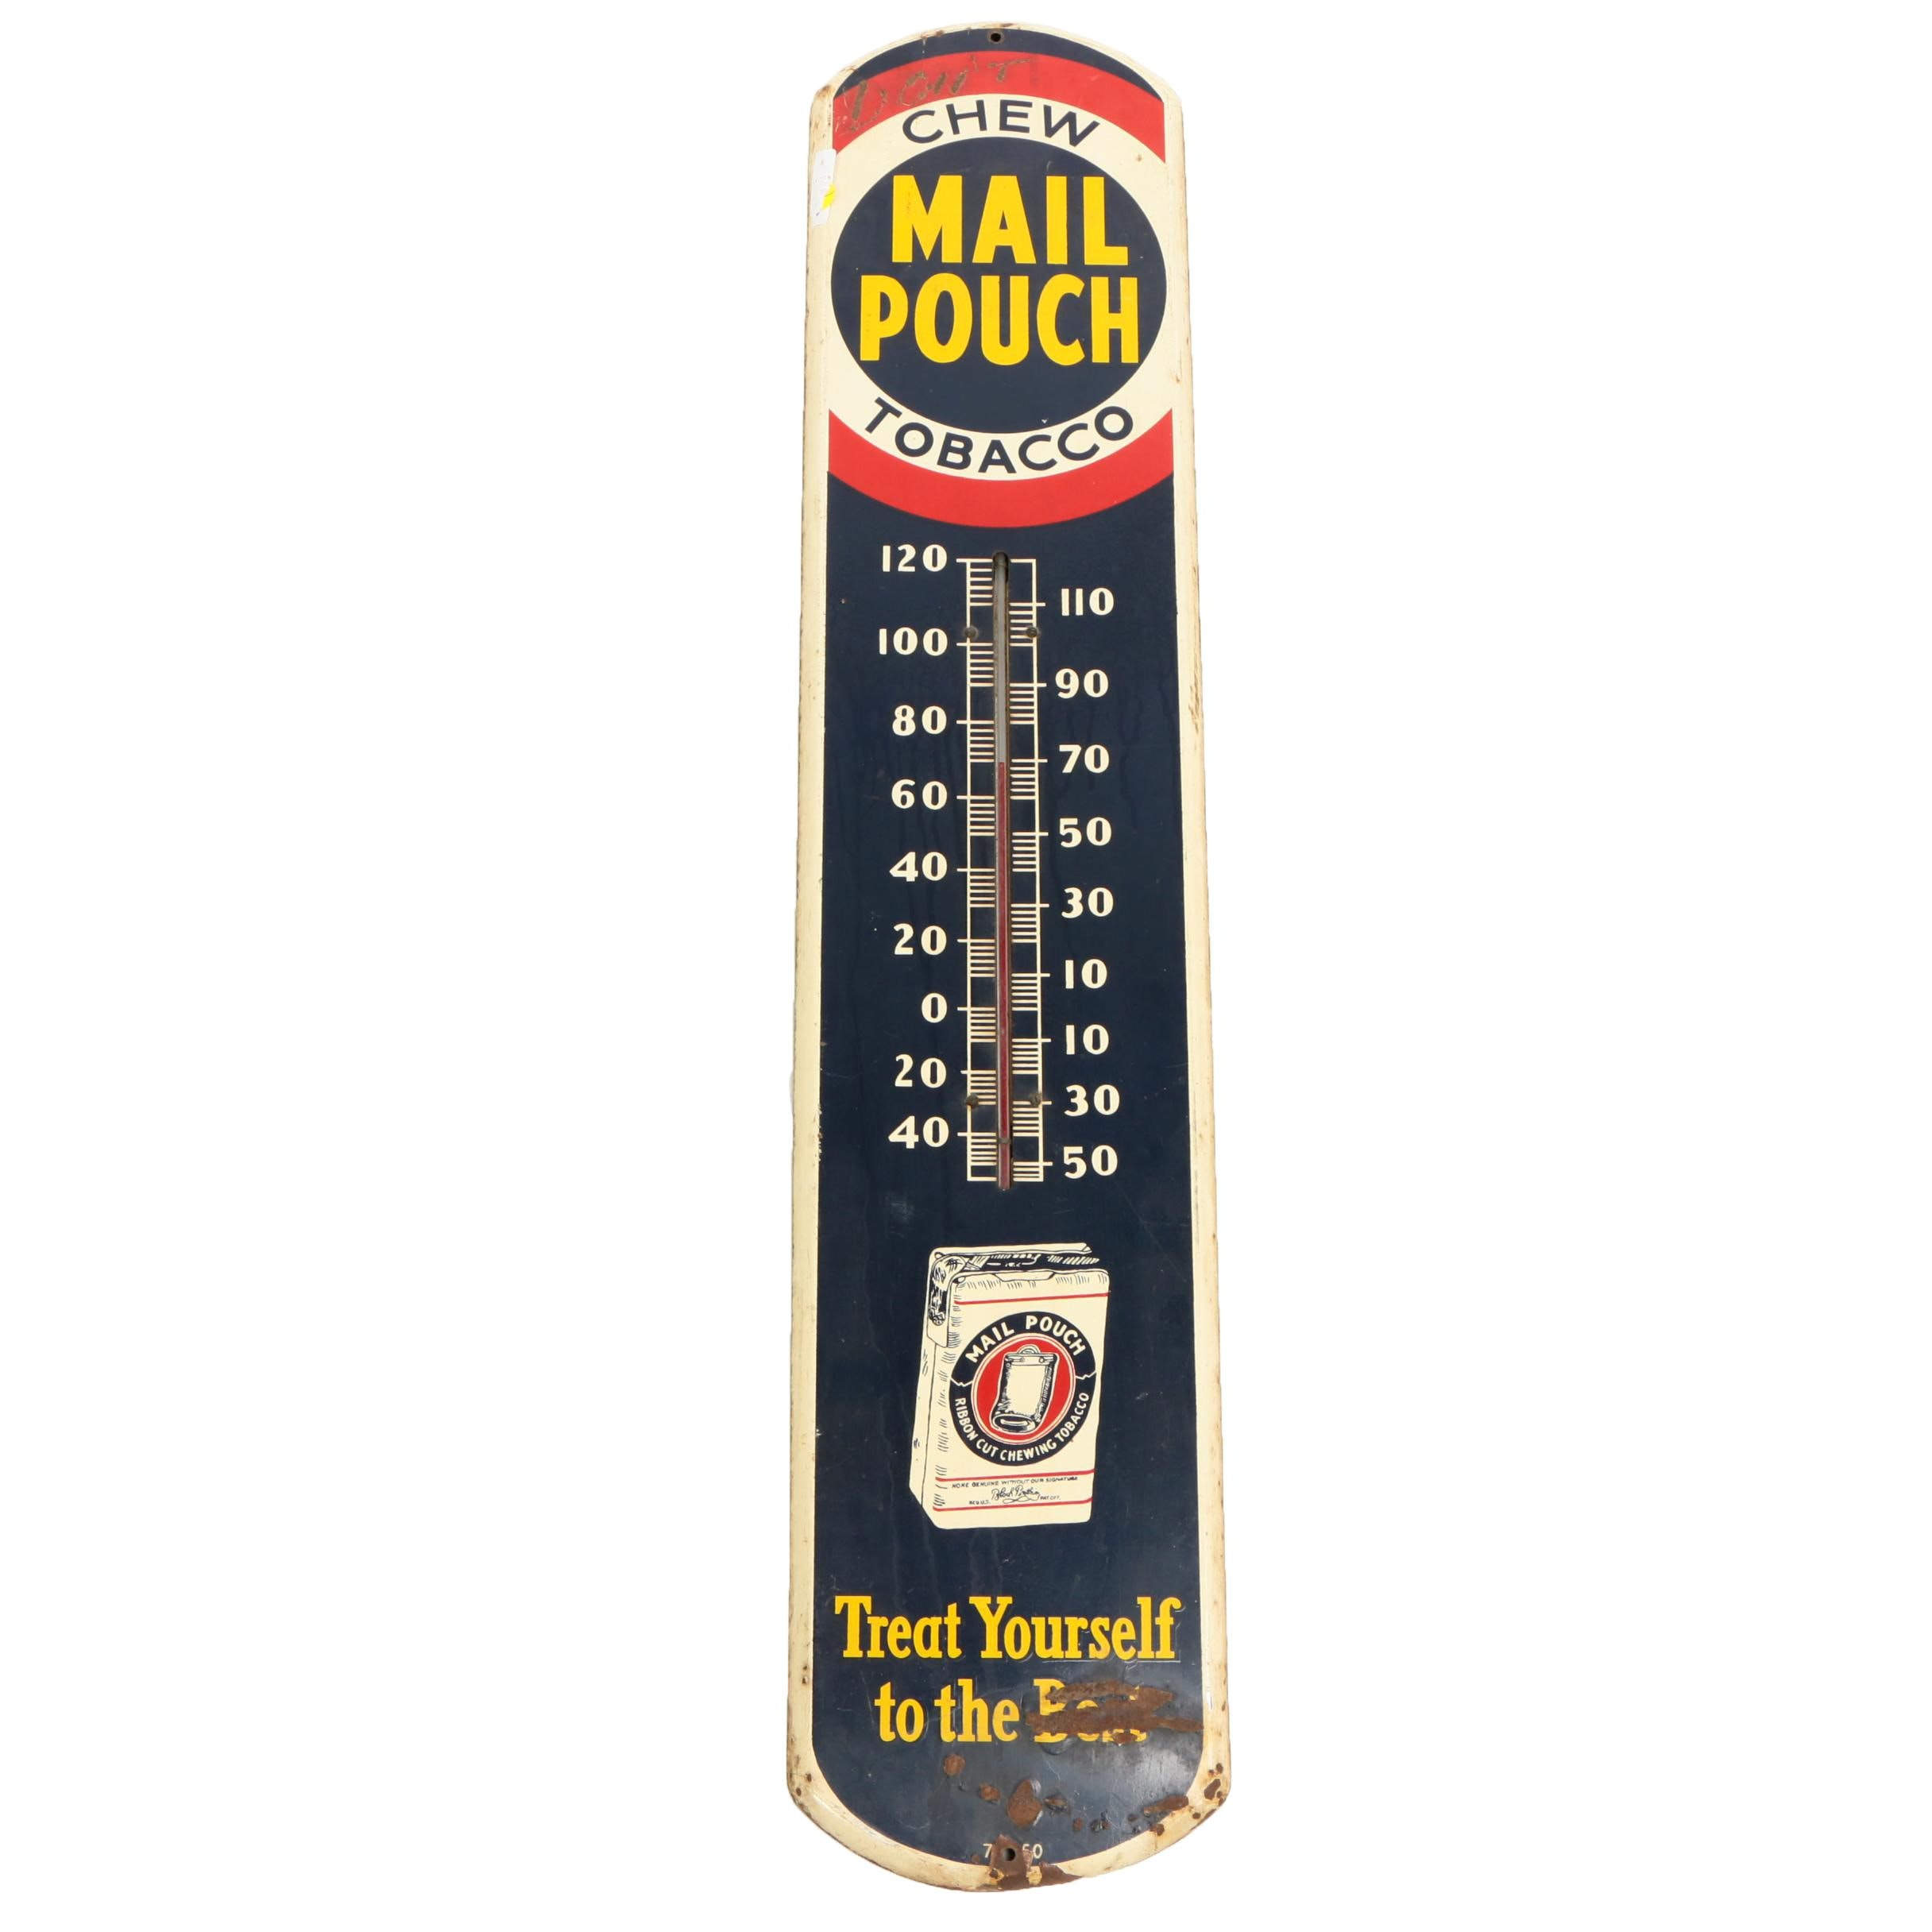 Mail Pouch Tobacco Enameled Metal Advertising Thermometer, 1930s